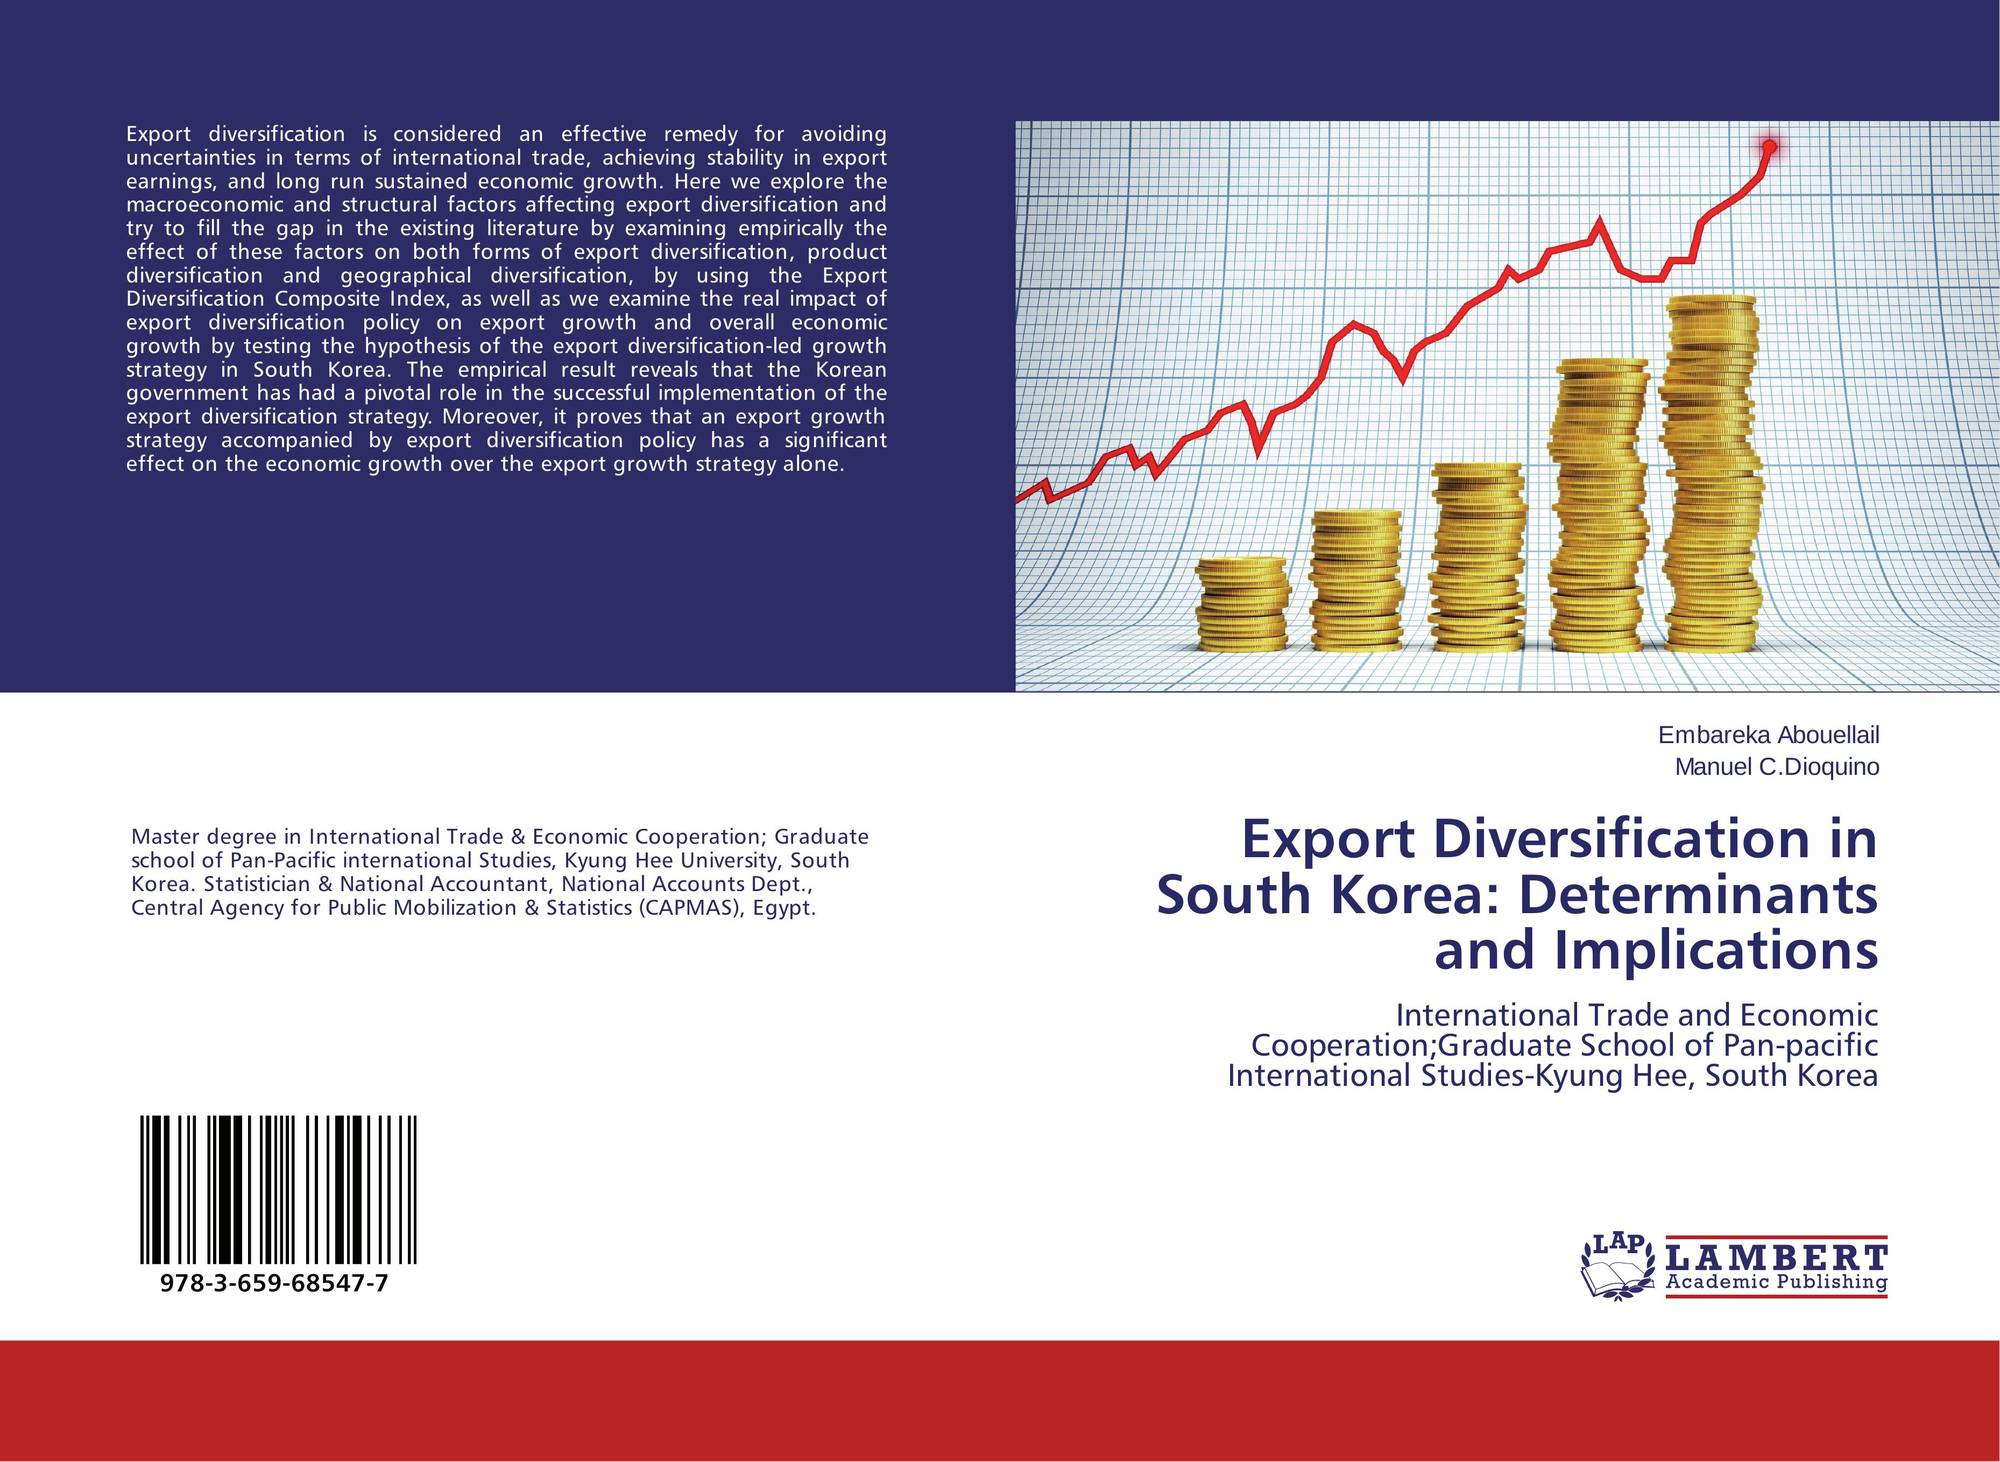 export diversification and economic growth Summary: the paper considers concepts of economic diversification with respect to exports (including service sectors) for small states we assessed the economic performance of different groups of 34 small states over the period of 1990-2015 and found those more diversified experienced lower output volatility and higher average growth than most other small states.